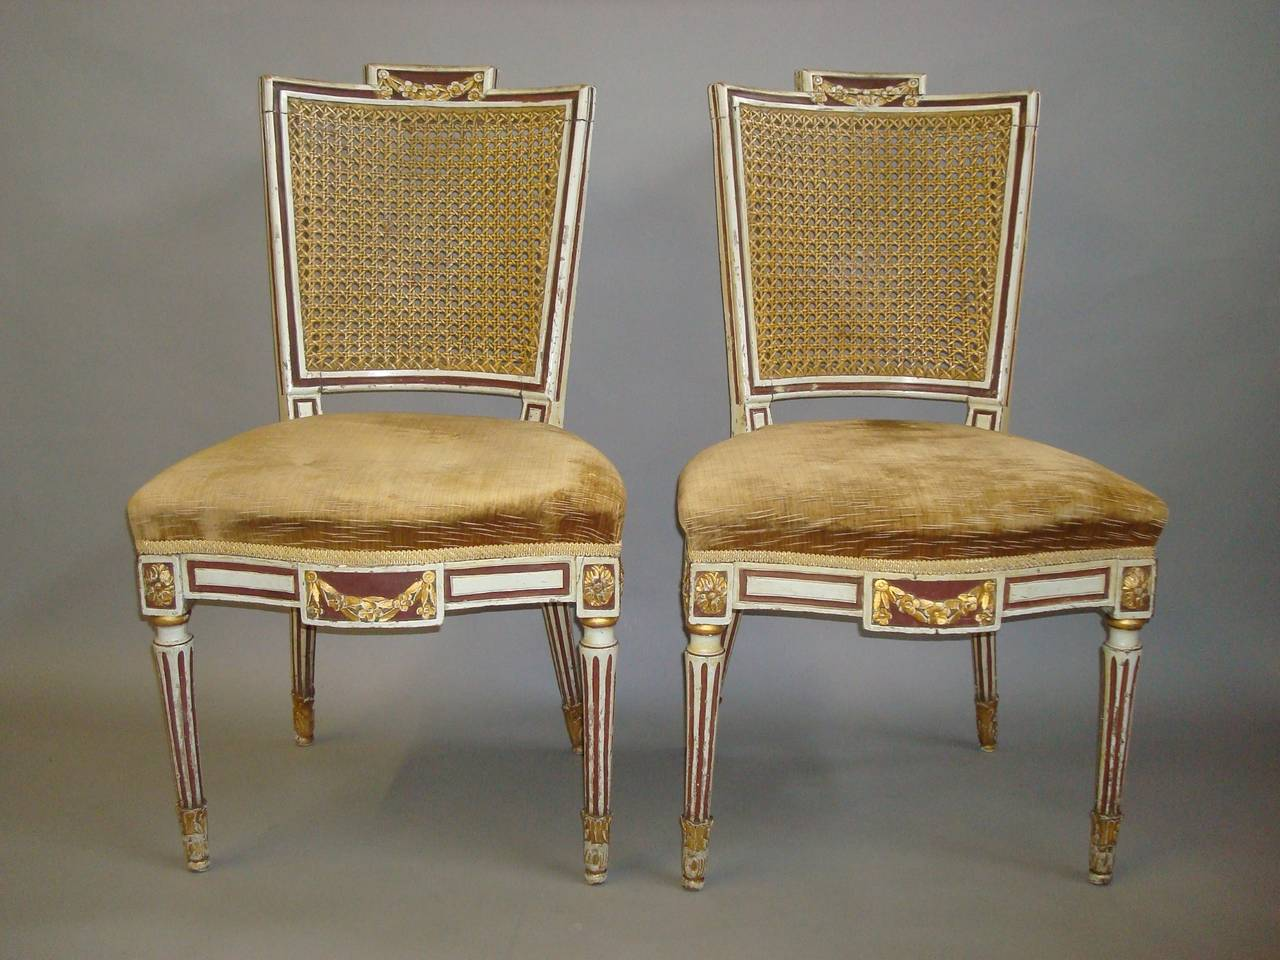 Italian Dining Chairs 19th Century Italian Set Of Twelve Dining Chairs In The